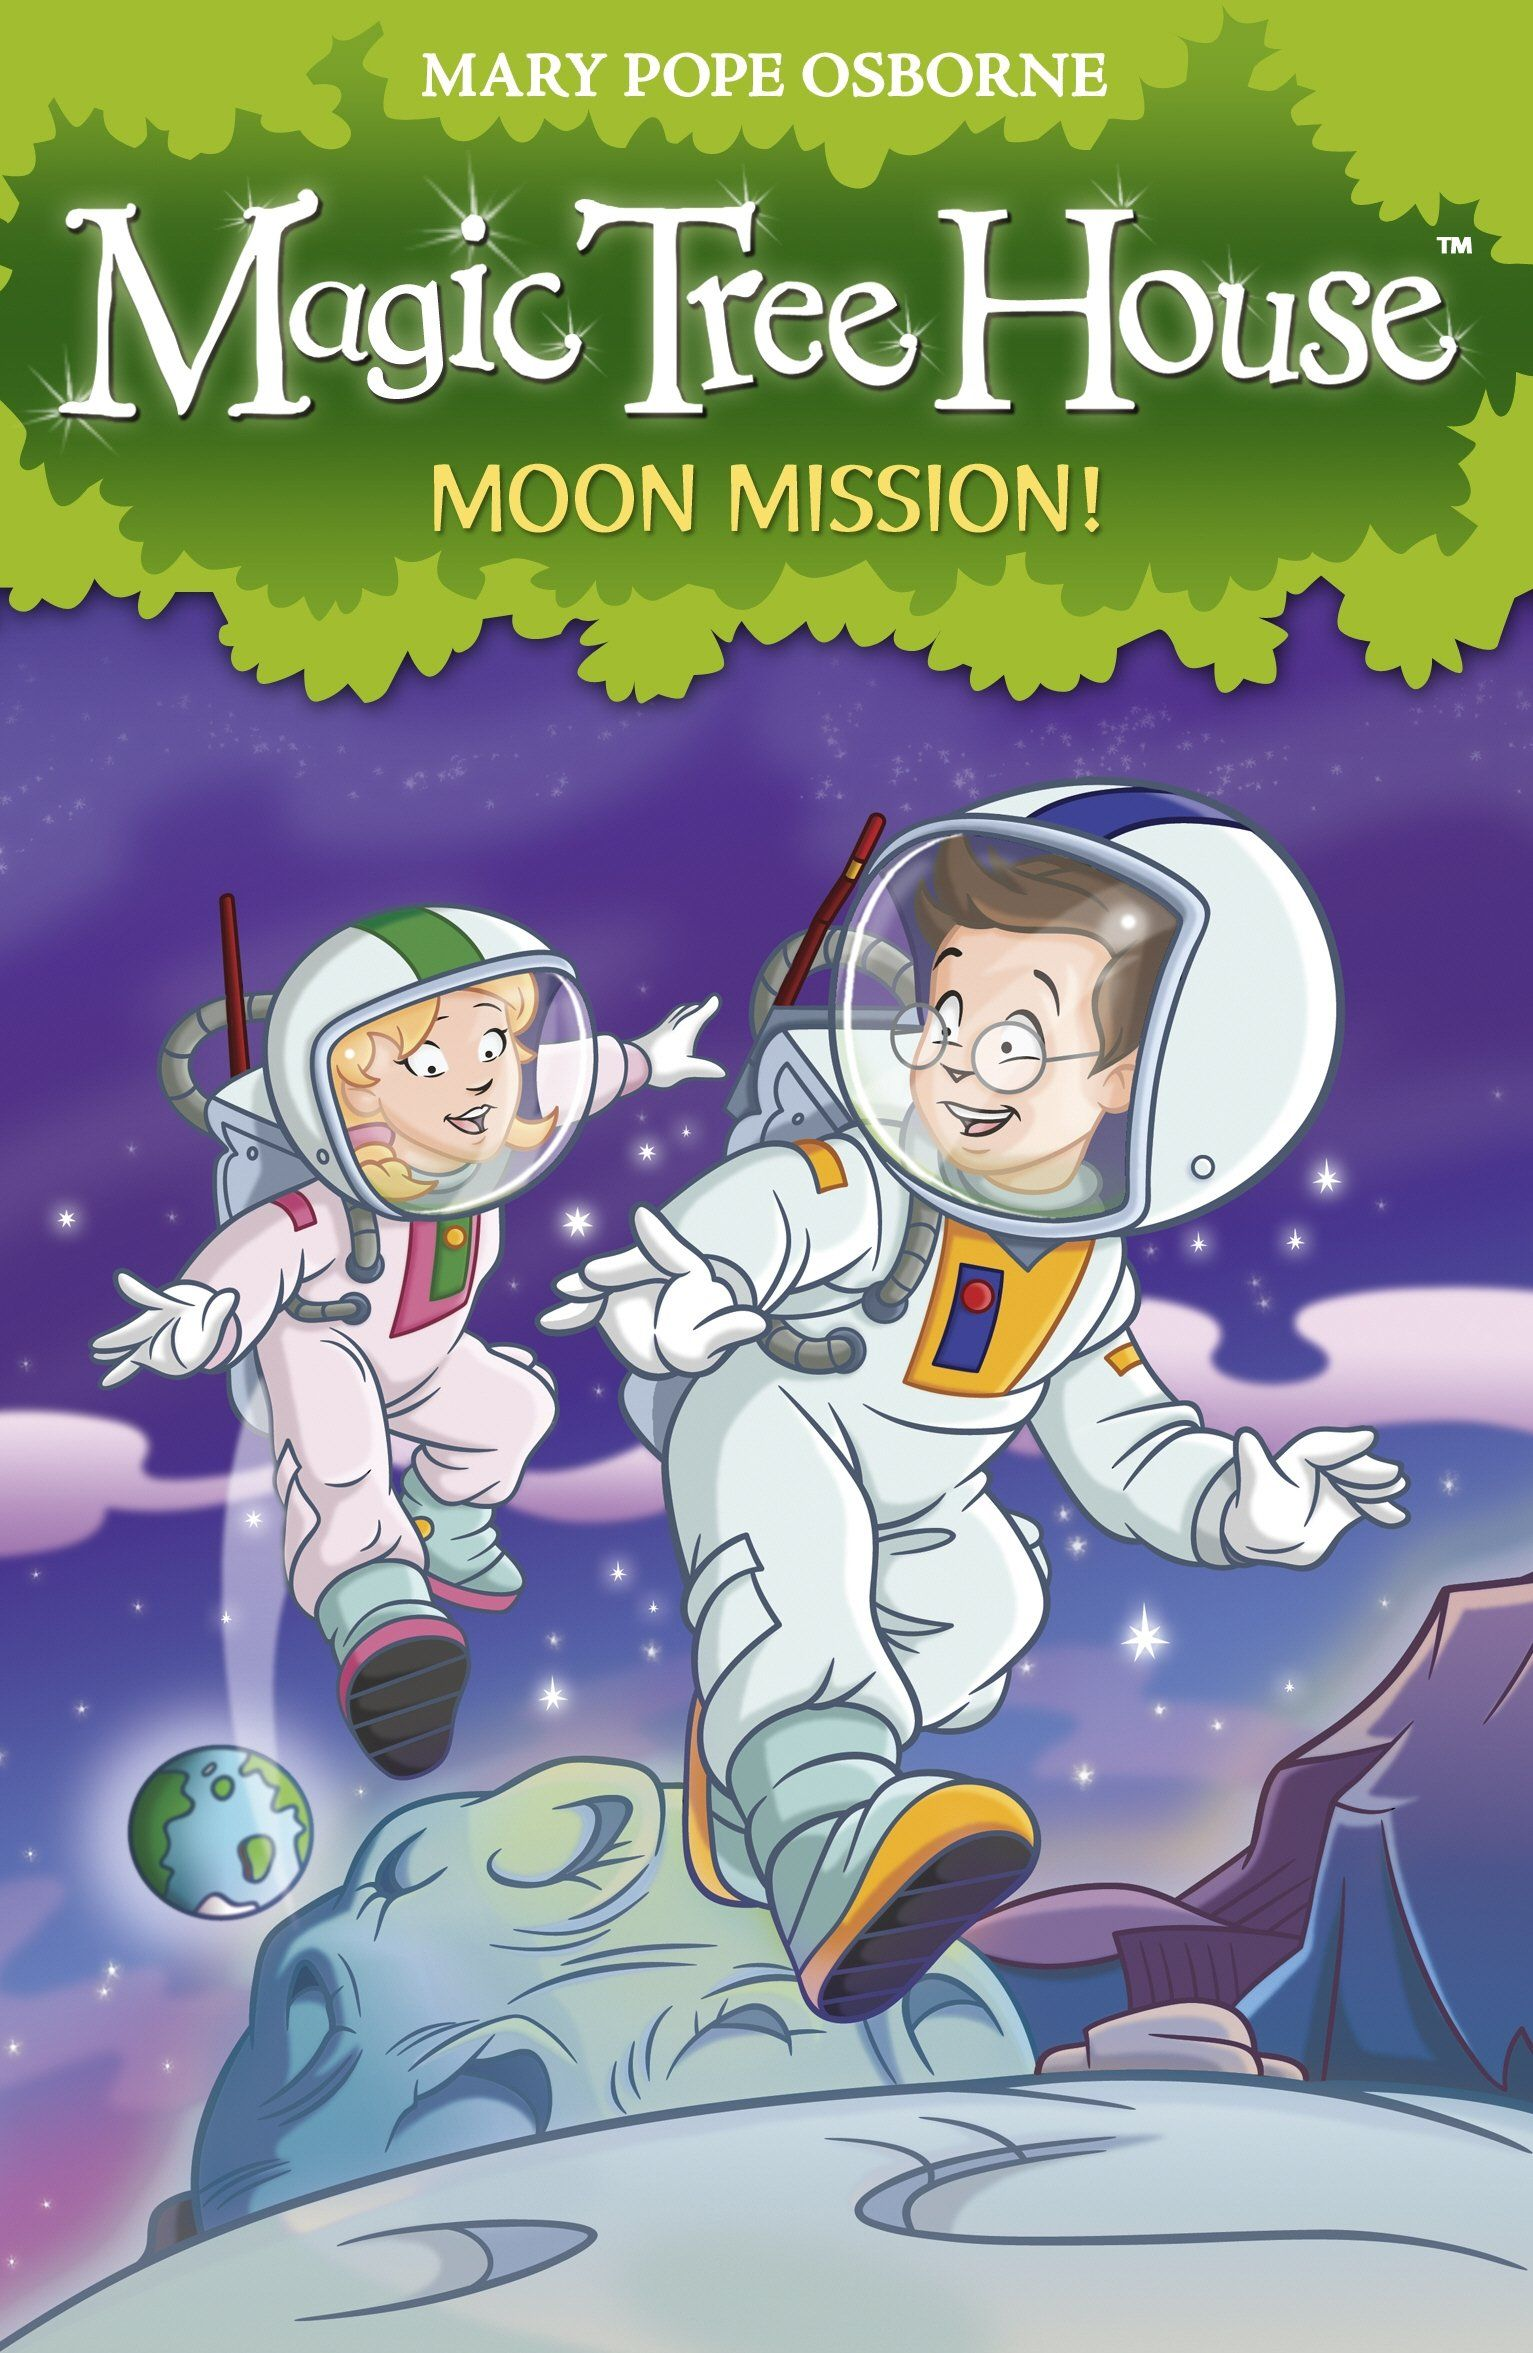 Image Result For The Magic Tree House Moon Mission